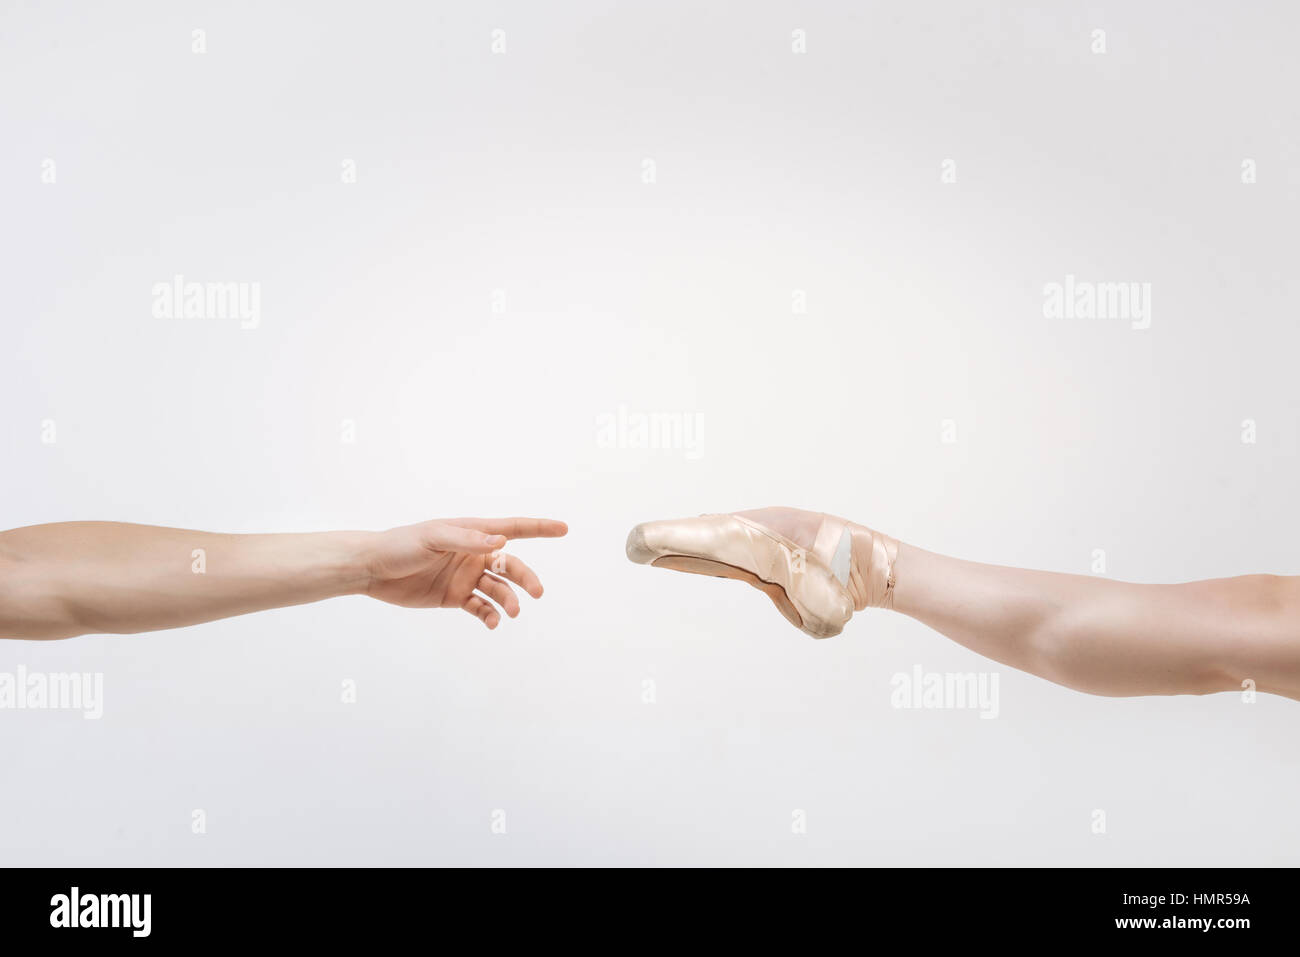 Leg and arm against white background - Stock Image